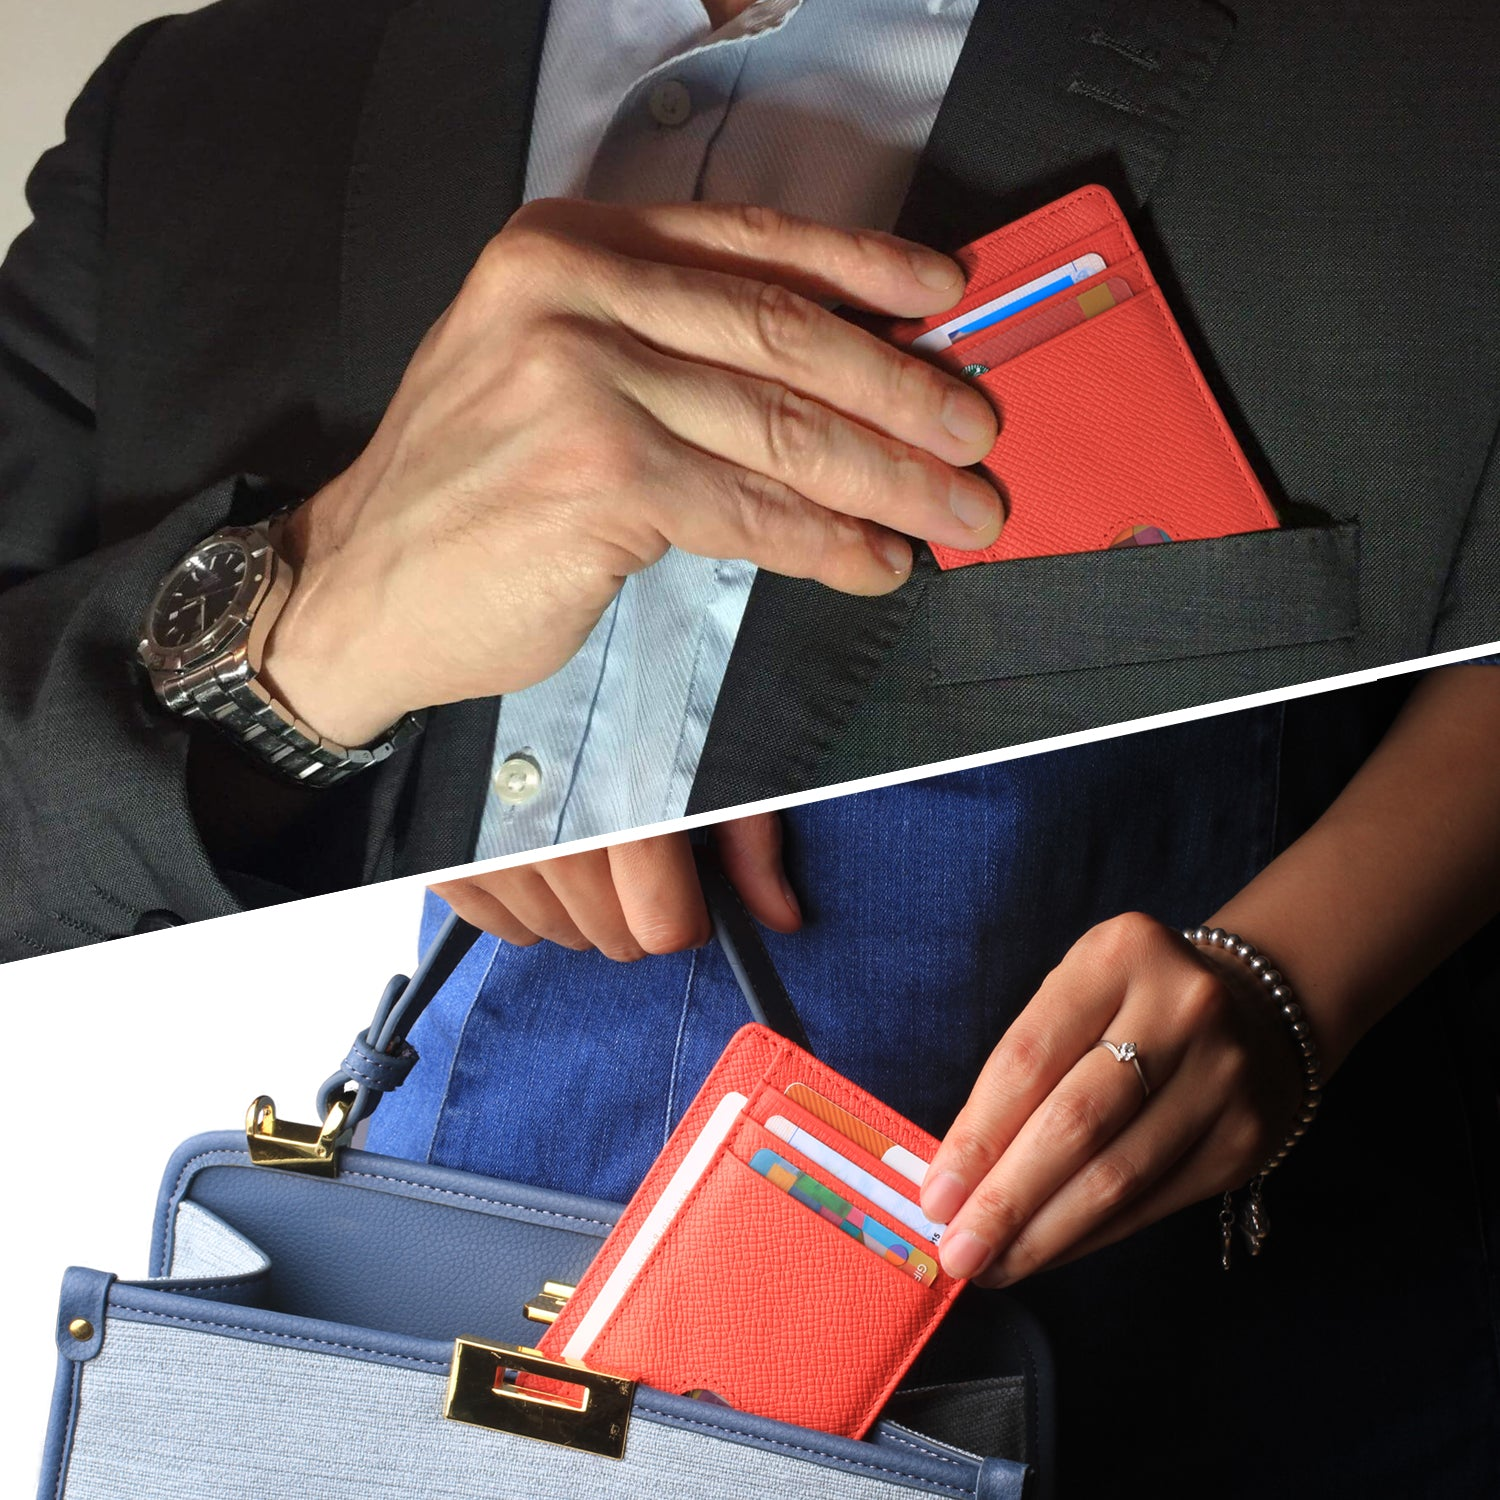 Slim Minimalist Front Pocket RFID Blocking Leather Wallets for Men & Women BG2288 Red - Borgasets